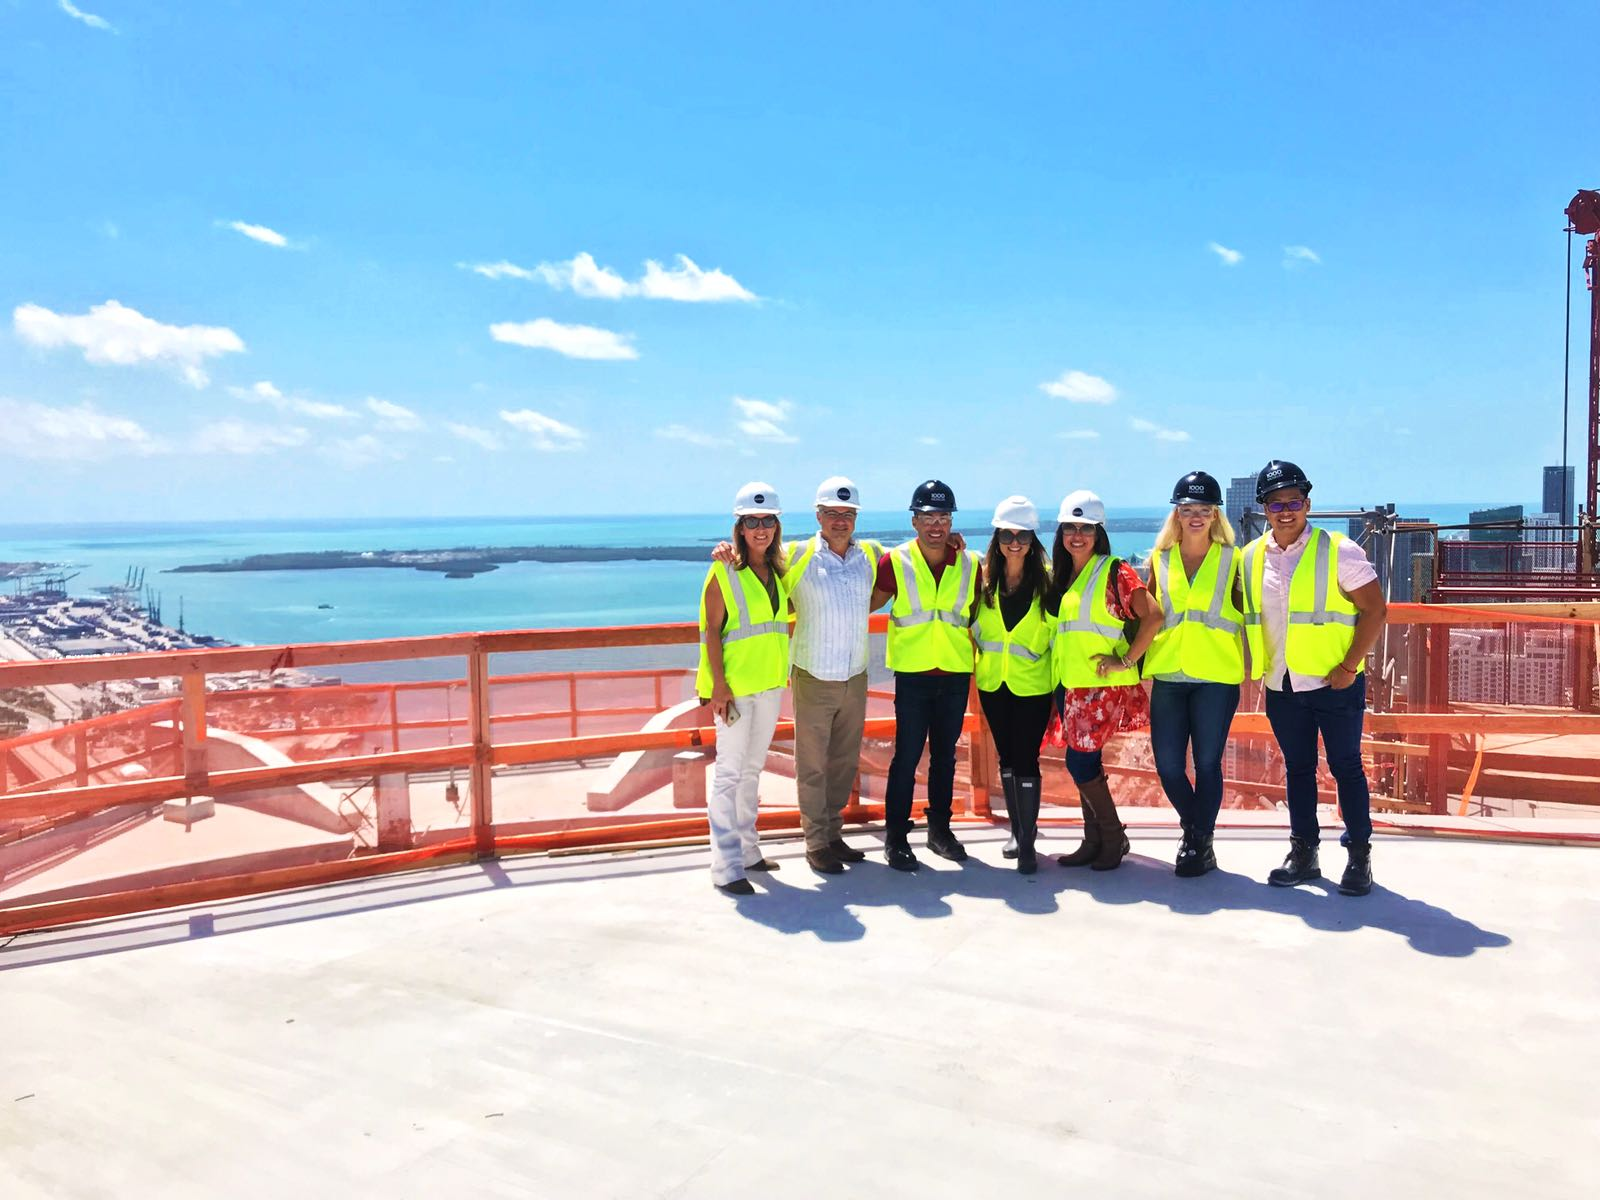 Miami Condo Investments Team visits One Thousand Museum helipad